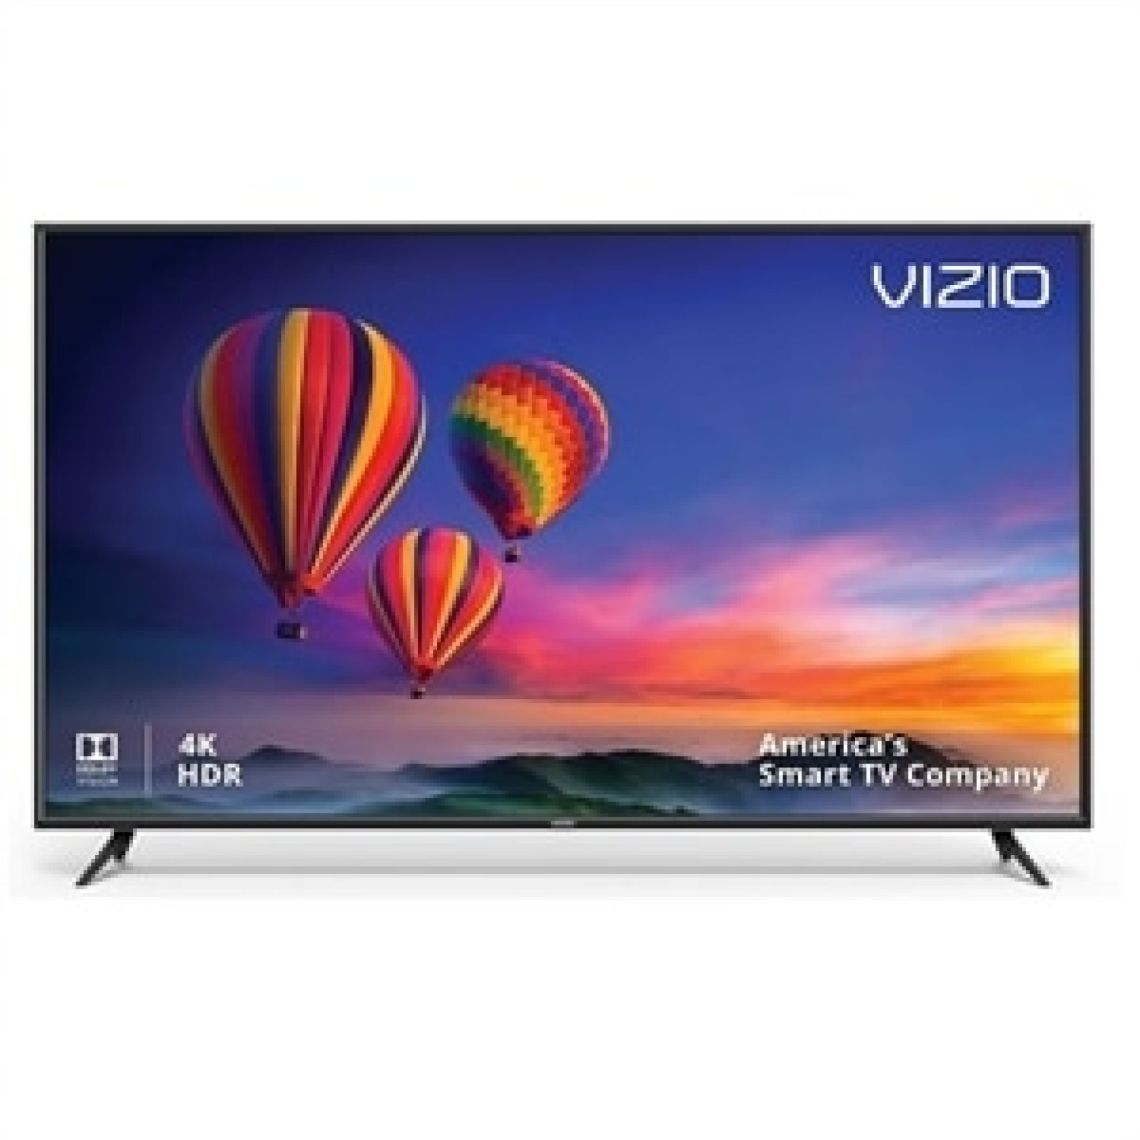 VIZIO 70 Inch LED 4K HDR Smart TV - E70-F3 | Dell United States